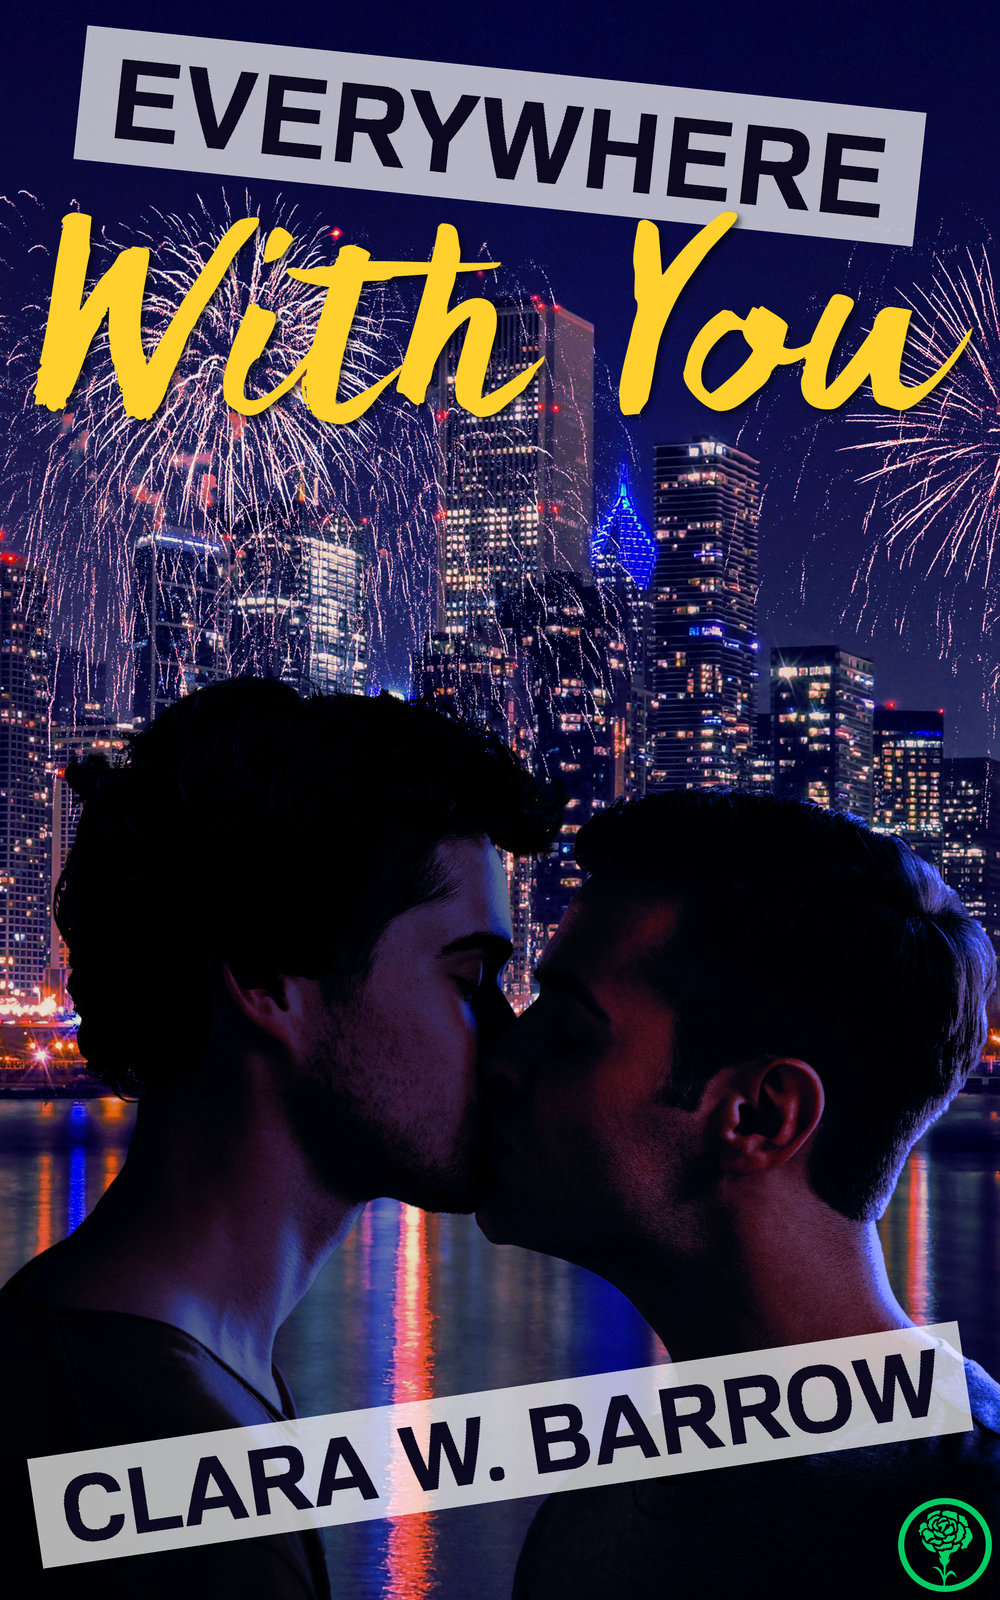 Sam and Will are in love. And by the end of winter break, everyone in Chicago is going to know it. - After the summer that changed their lives forever, they've spent an entire semester apart. Now they're finally home for the holidays. For two college guys who are still new to this whole